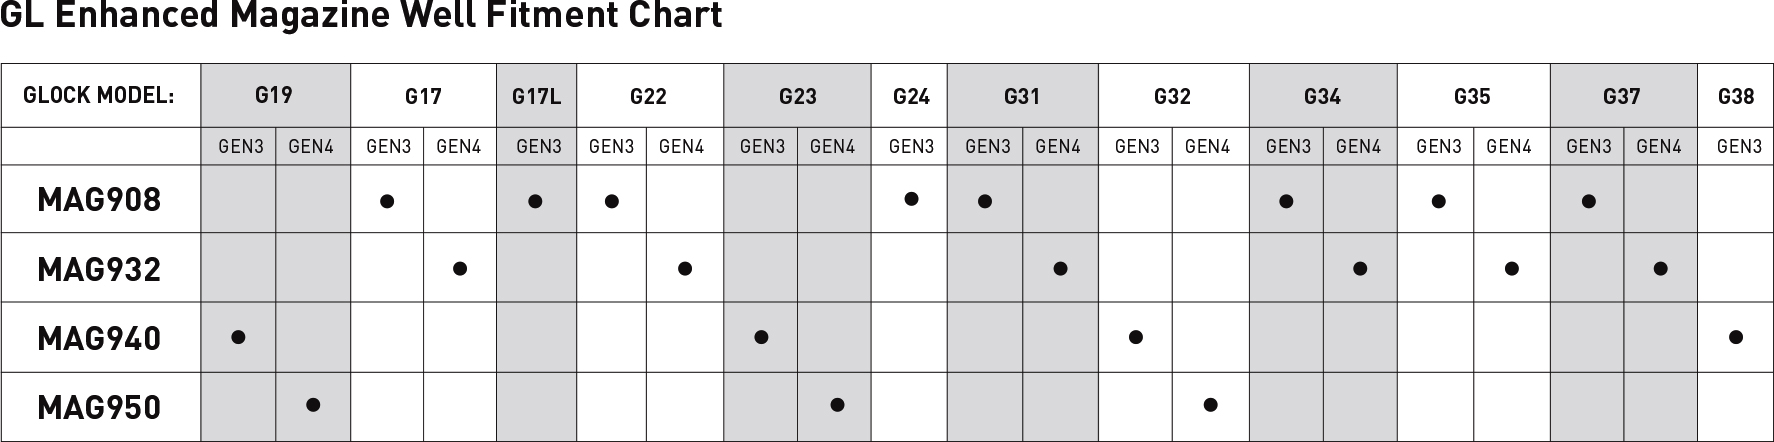 Magpul Glock Magwell Fitment Chart